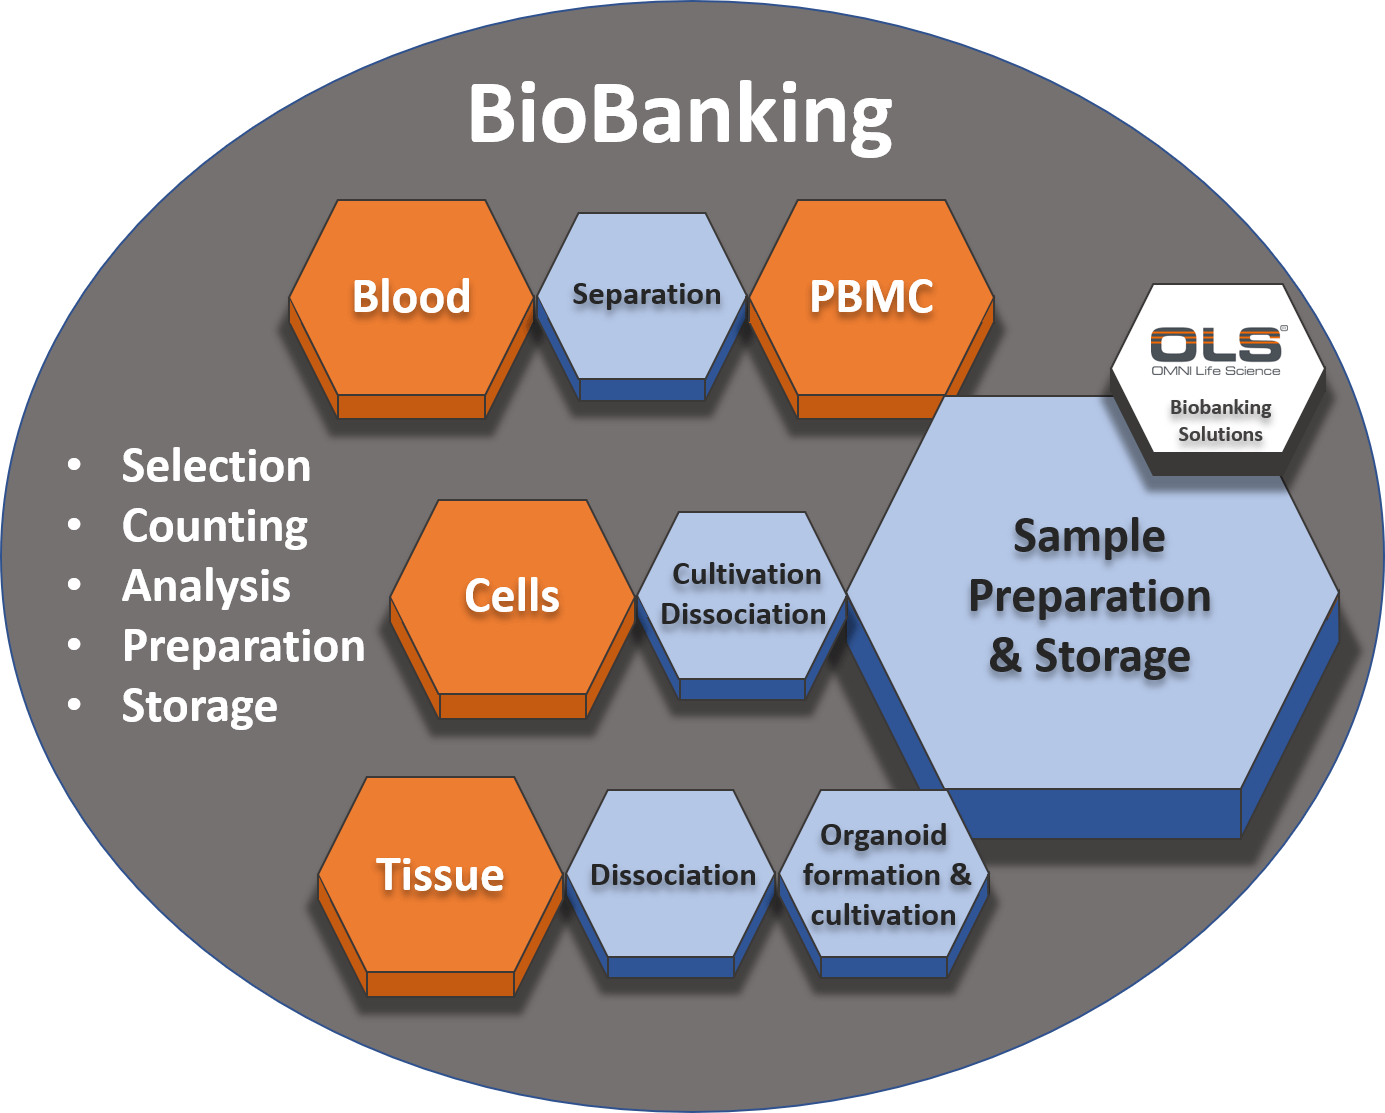 BioBanking Solutions Overview by OLS